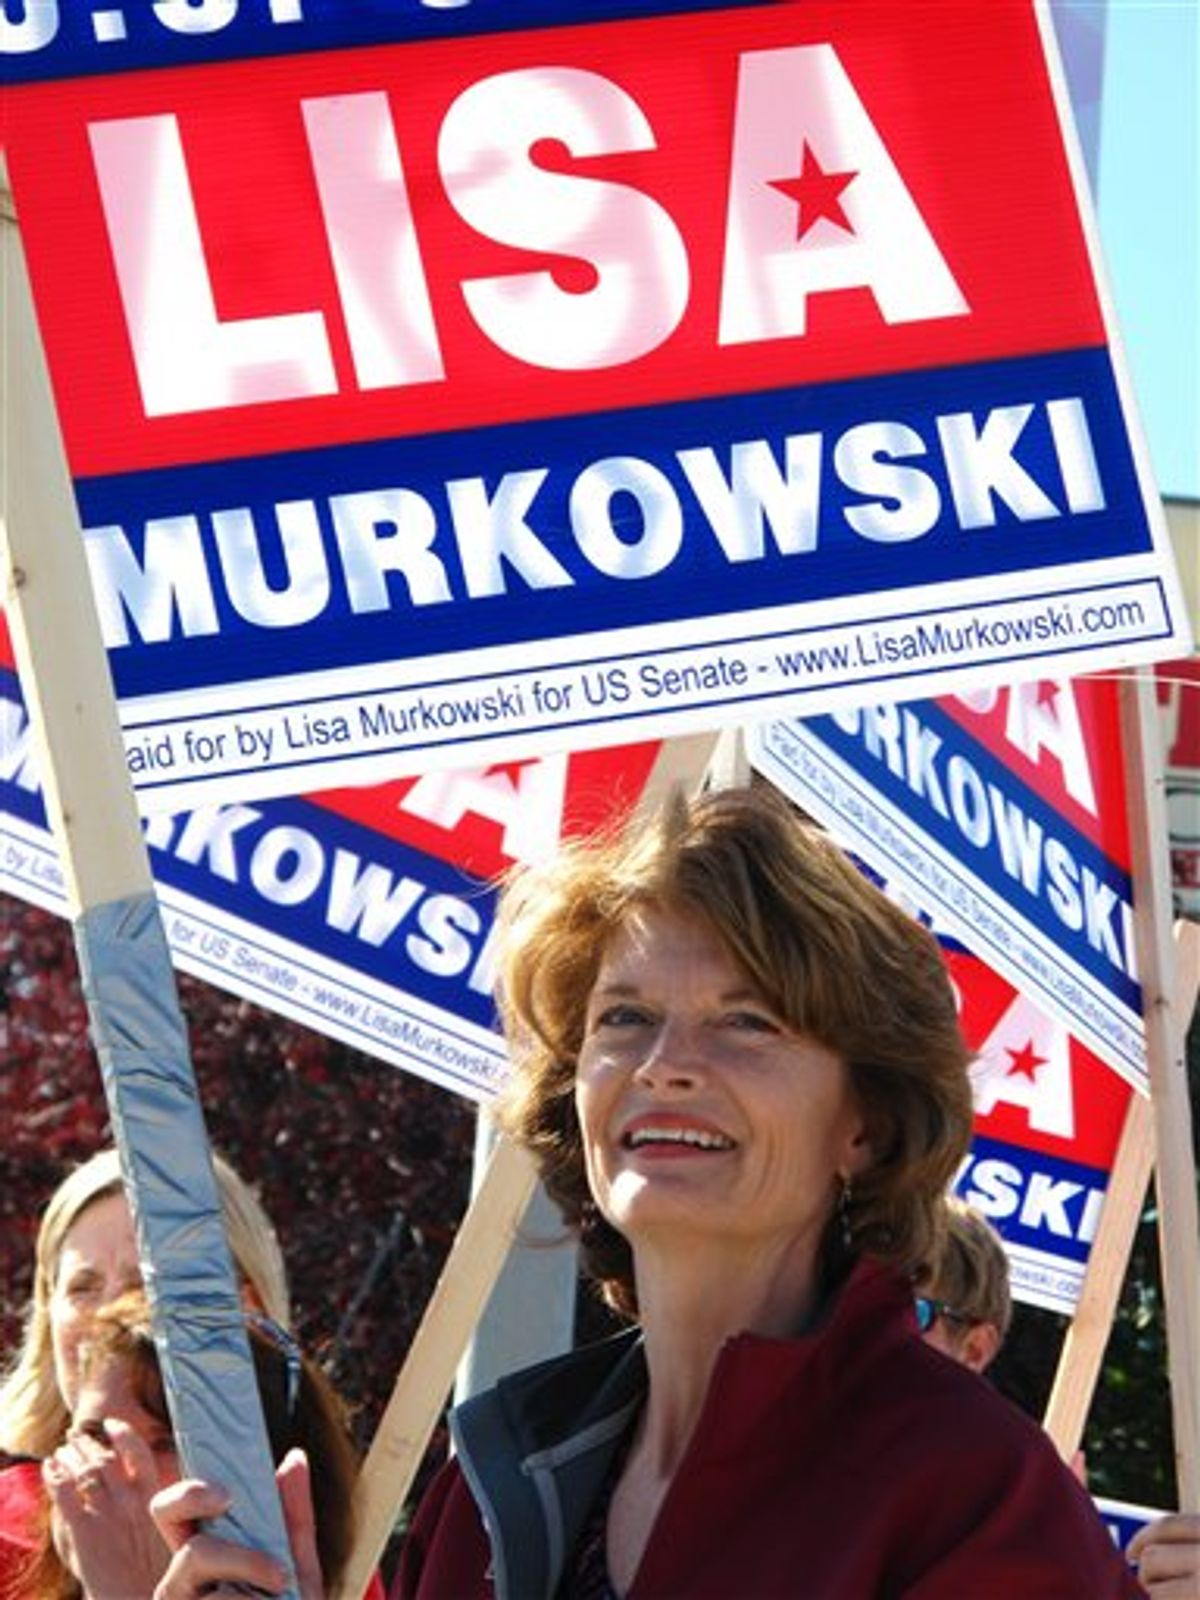 """U.S. Sen. Lisa Murkowski, R-Alaska, right, joins volunteers to wave to motorists on Monday, Aug. 23, 2010, in Anchorage, Alaska.  Candidates are pulling no punches in their last minute push for voters in Tuesday's primary. The greatest proof of this is in the U.S. Senate race where Sarah Palin has re emerged months after first endorsing GOP challenger Joe Miller to urge Alaskans to support him and to oust Murkowski. Murkowski's not shying away, running a new radio spot of her own, called """"Truth,"""" in which she uses audio from a talk show host's tirade against Miller to show Miller as distorting her record. (AP Photo/Mark Thiessen) (AP)"""